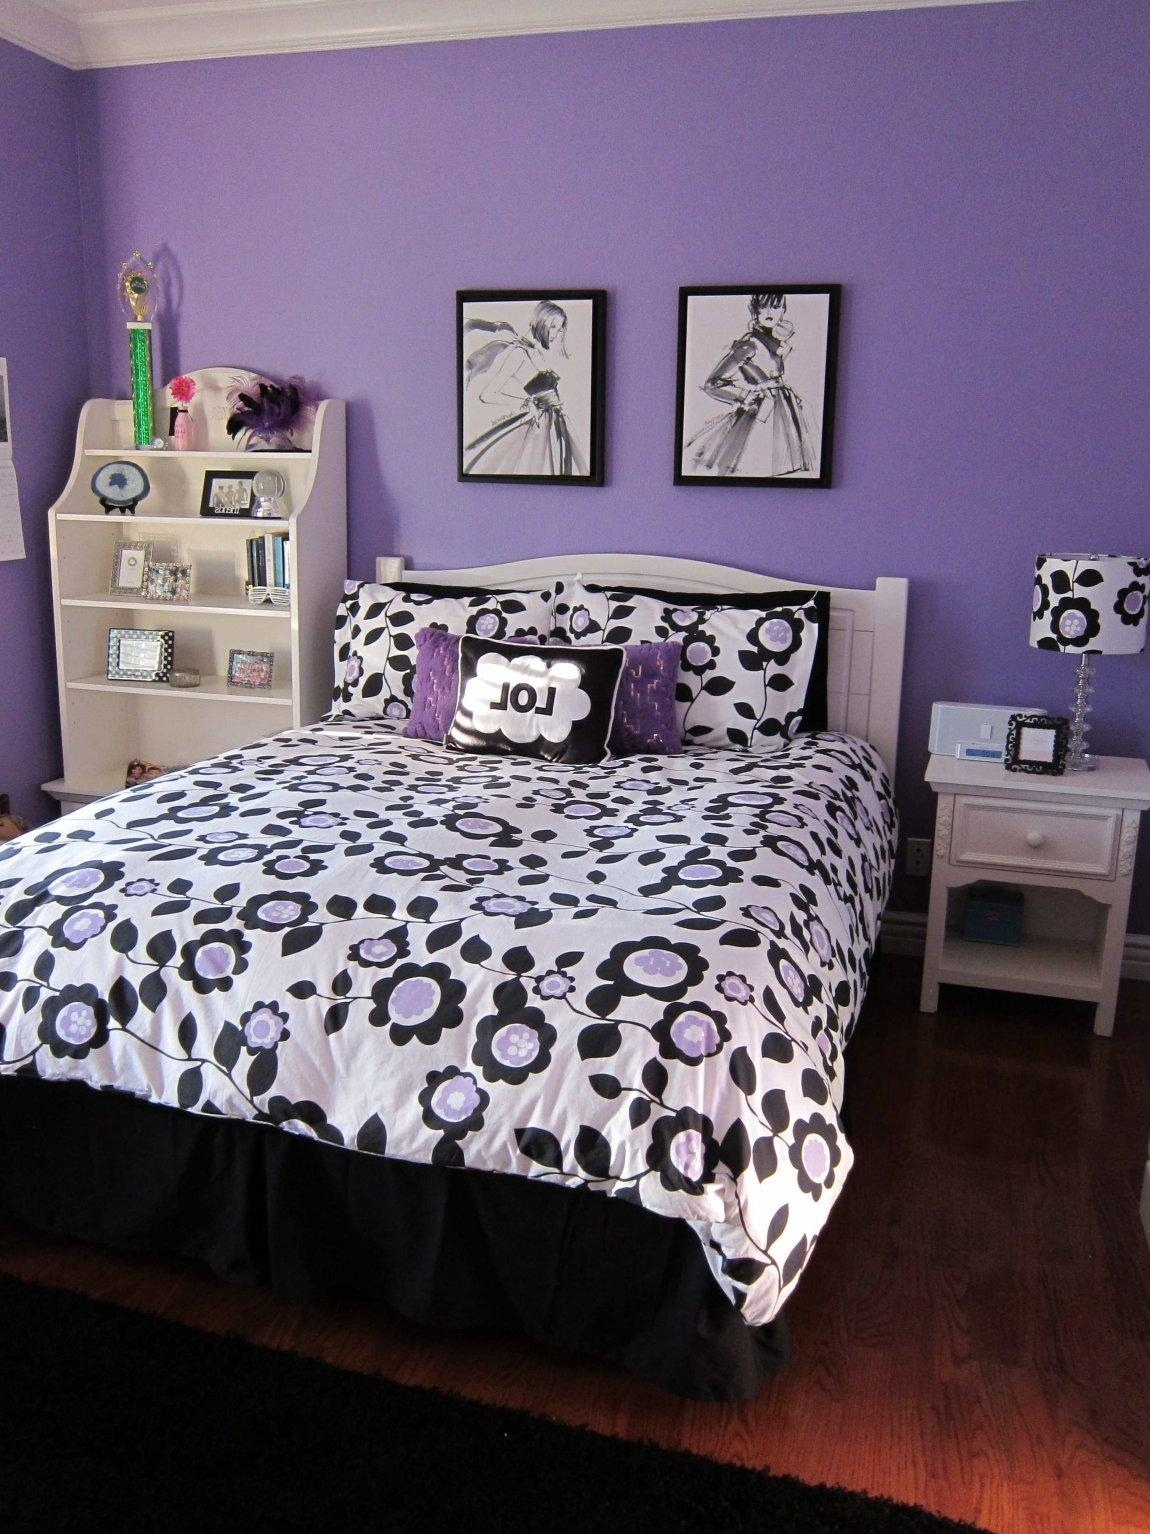 Bedroom Wall Art Canvas Perfect For Teenage Girl Bedrooms On Asian Regarding Asian Metal Wall Art (Image 6 of 20)